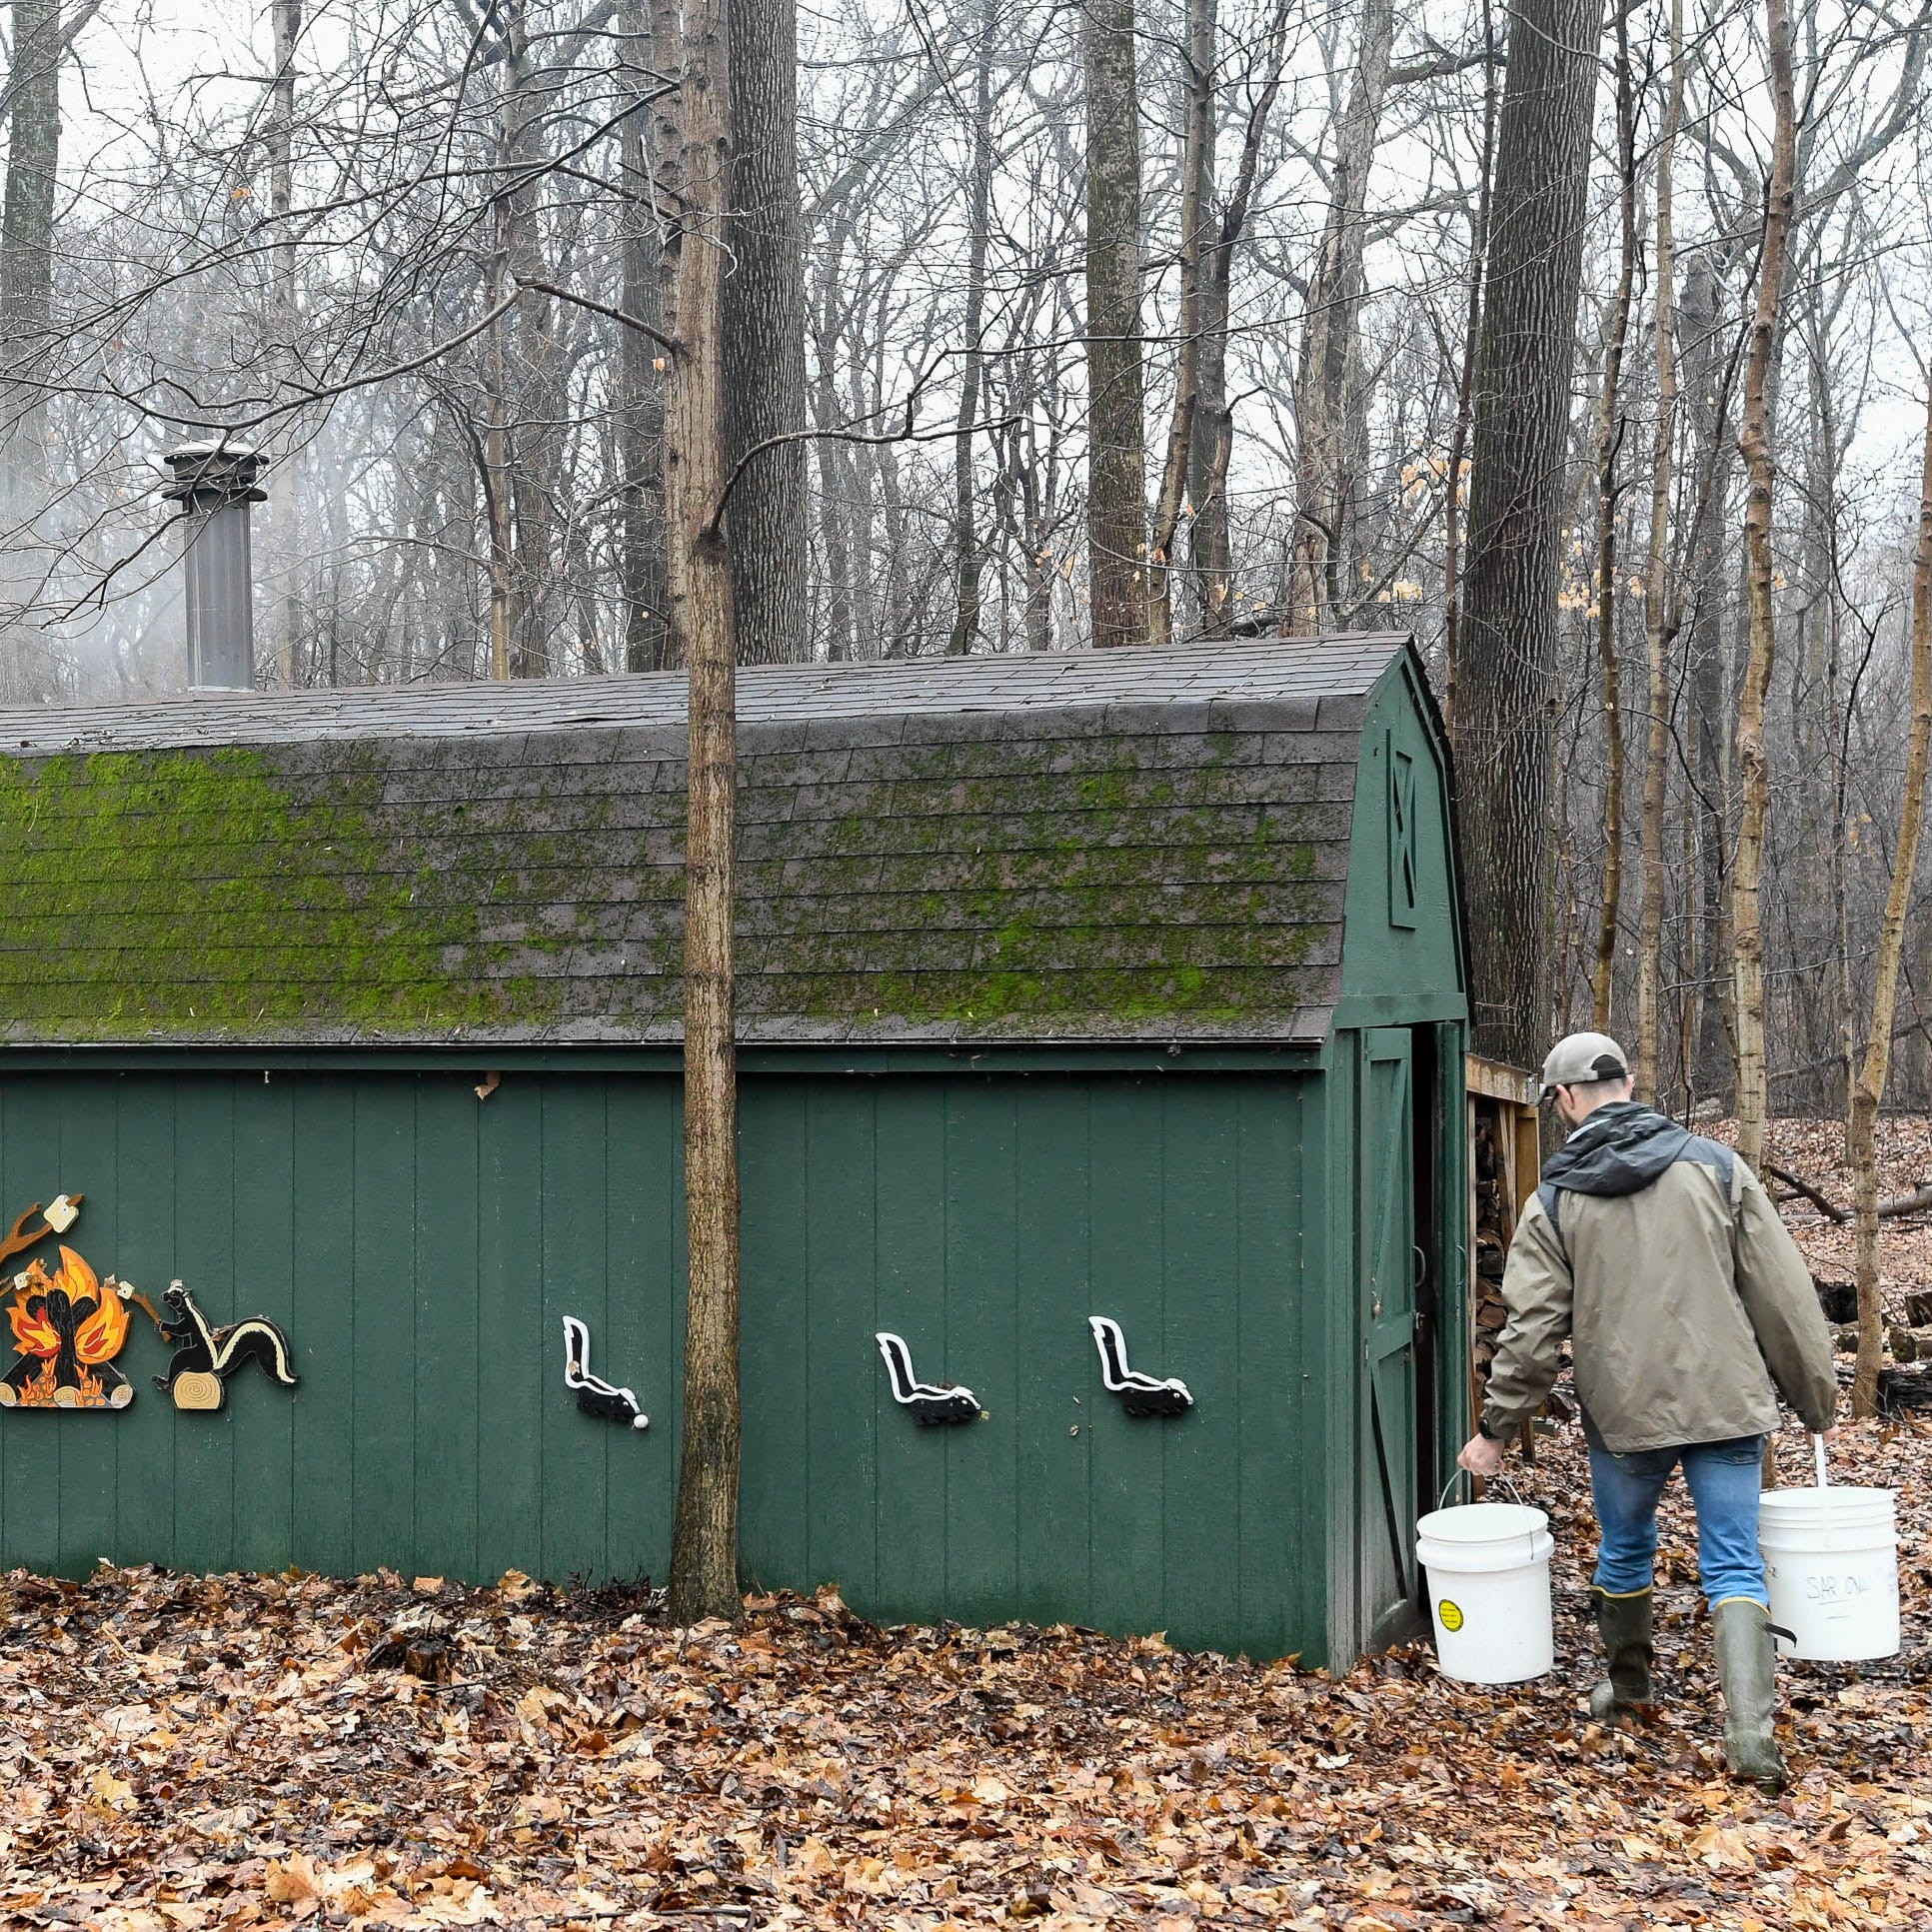 How maple syrup saved a village and the local wildlife during harsh winter